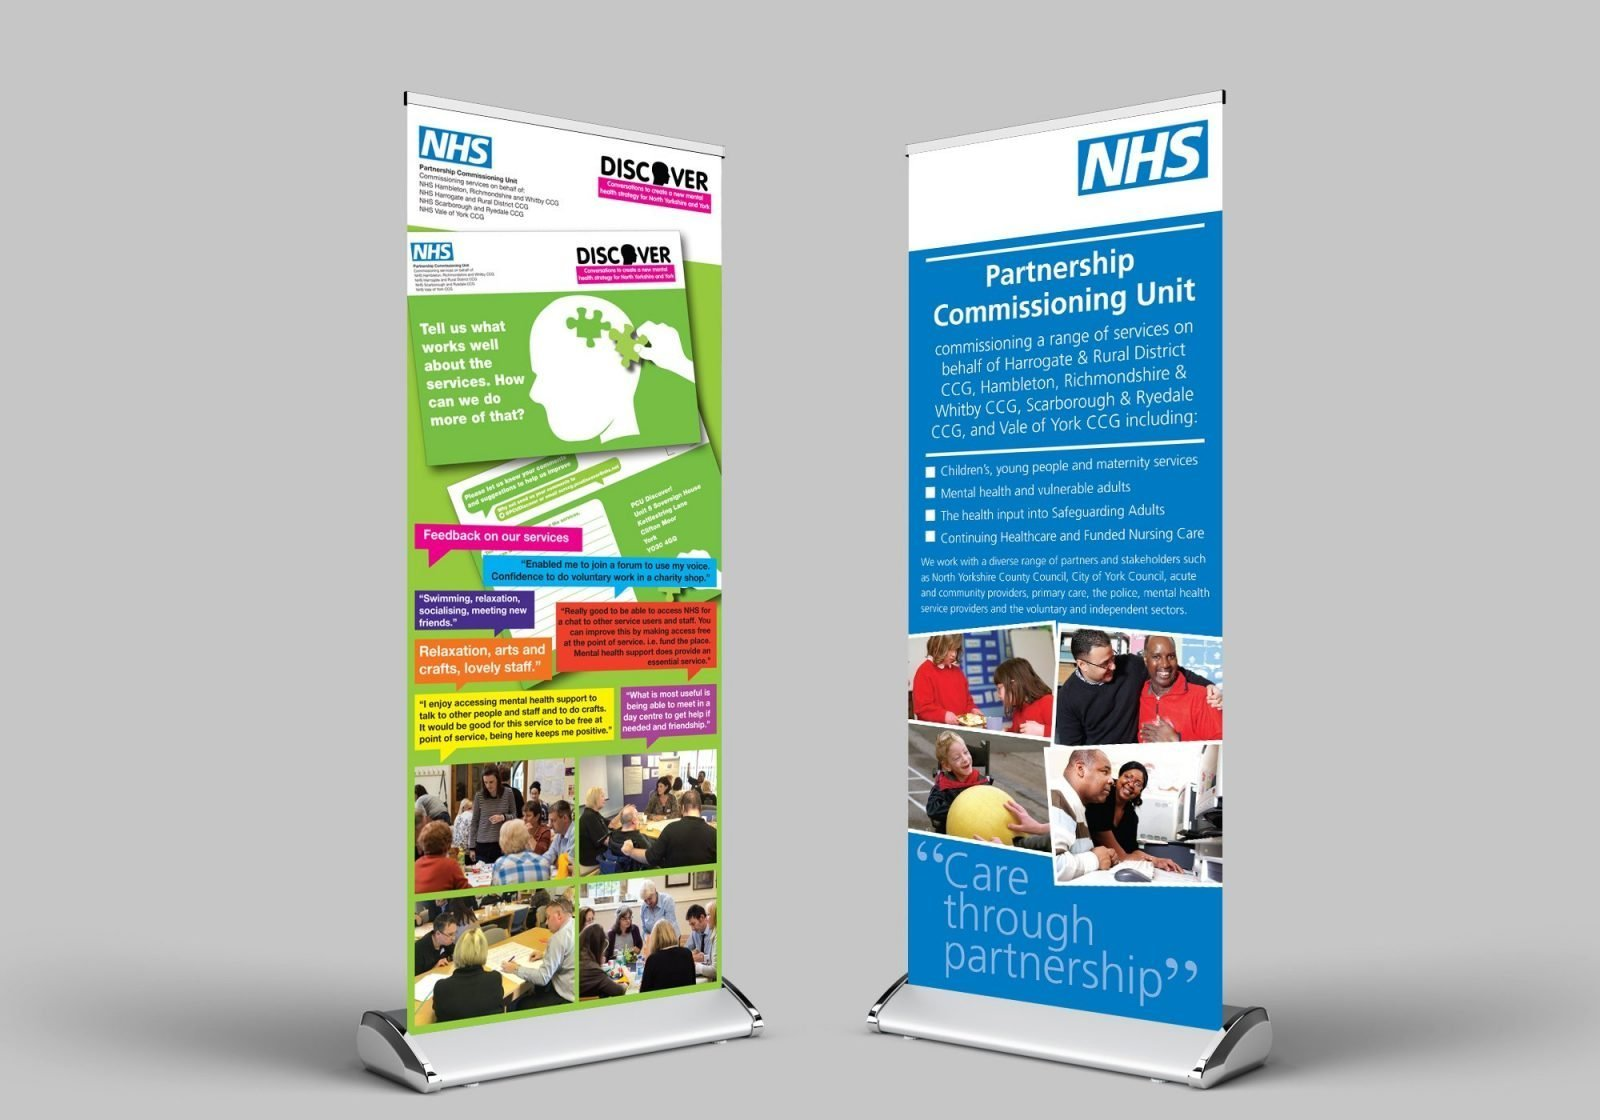 Two roller banner designs for the NHS Partnership Commissioning Unit